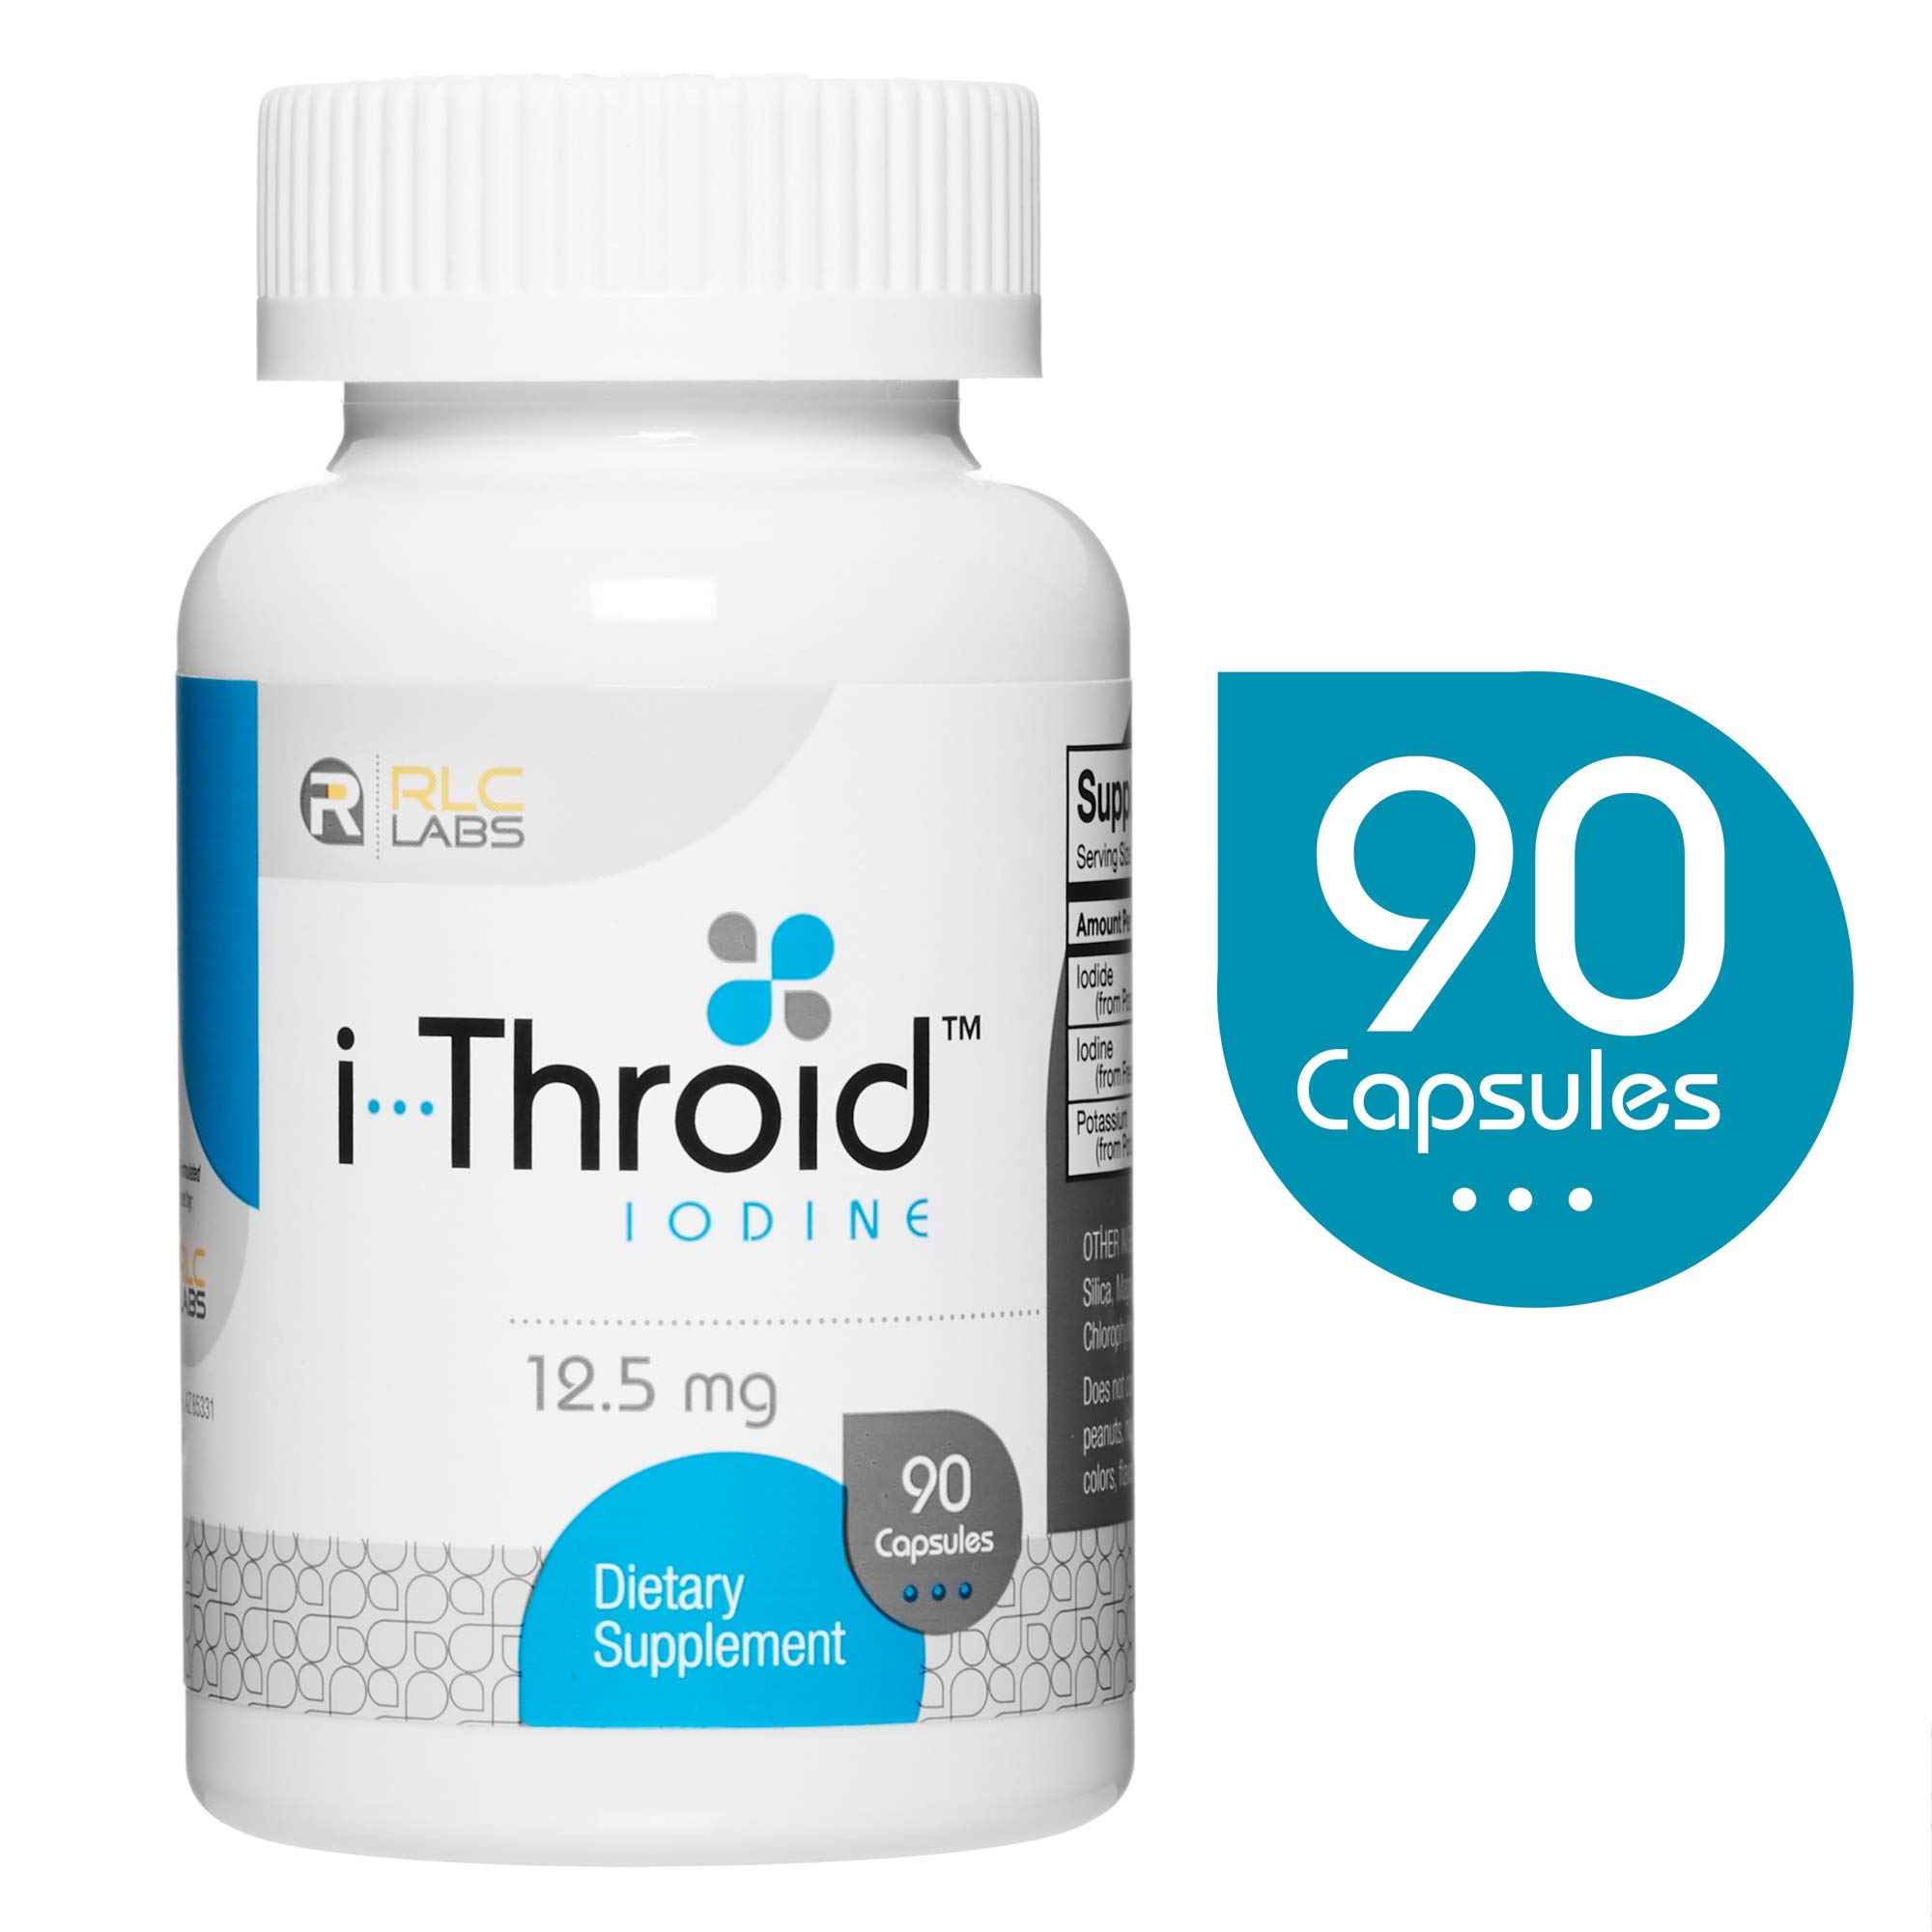 RLC, i-Throid 12.5 mg, Iodine and Iodide Supplement to Support Thyroid Health and Hormone Balance, 90 capsules (90 servings) by RLC Labs